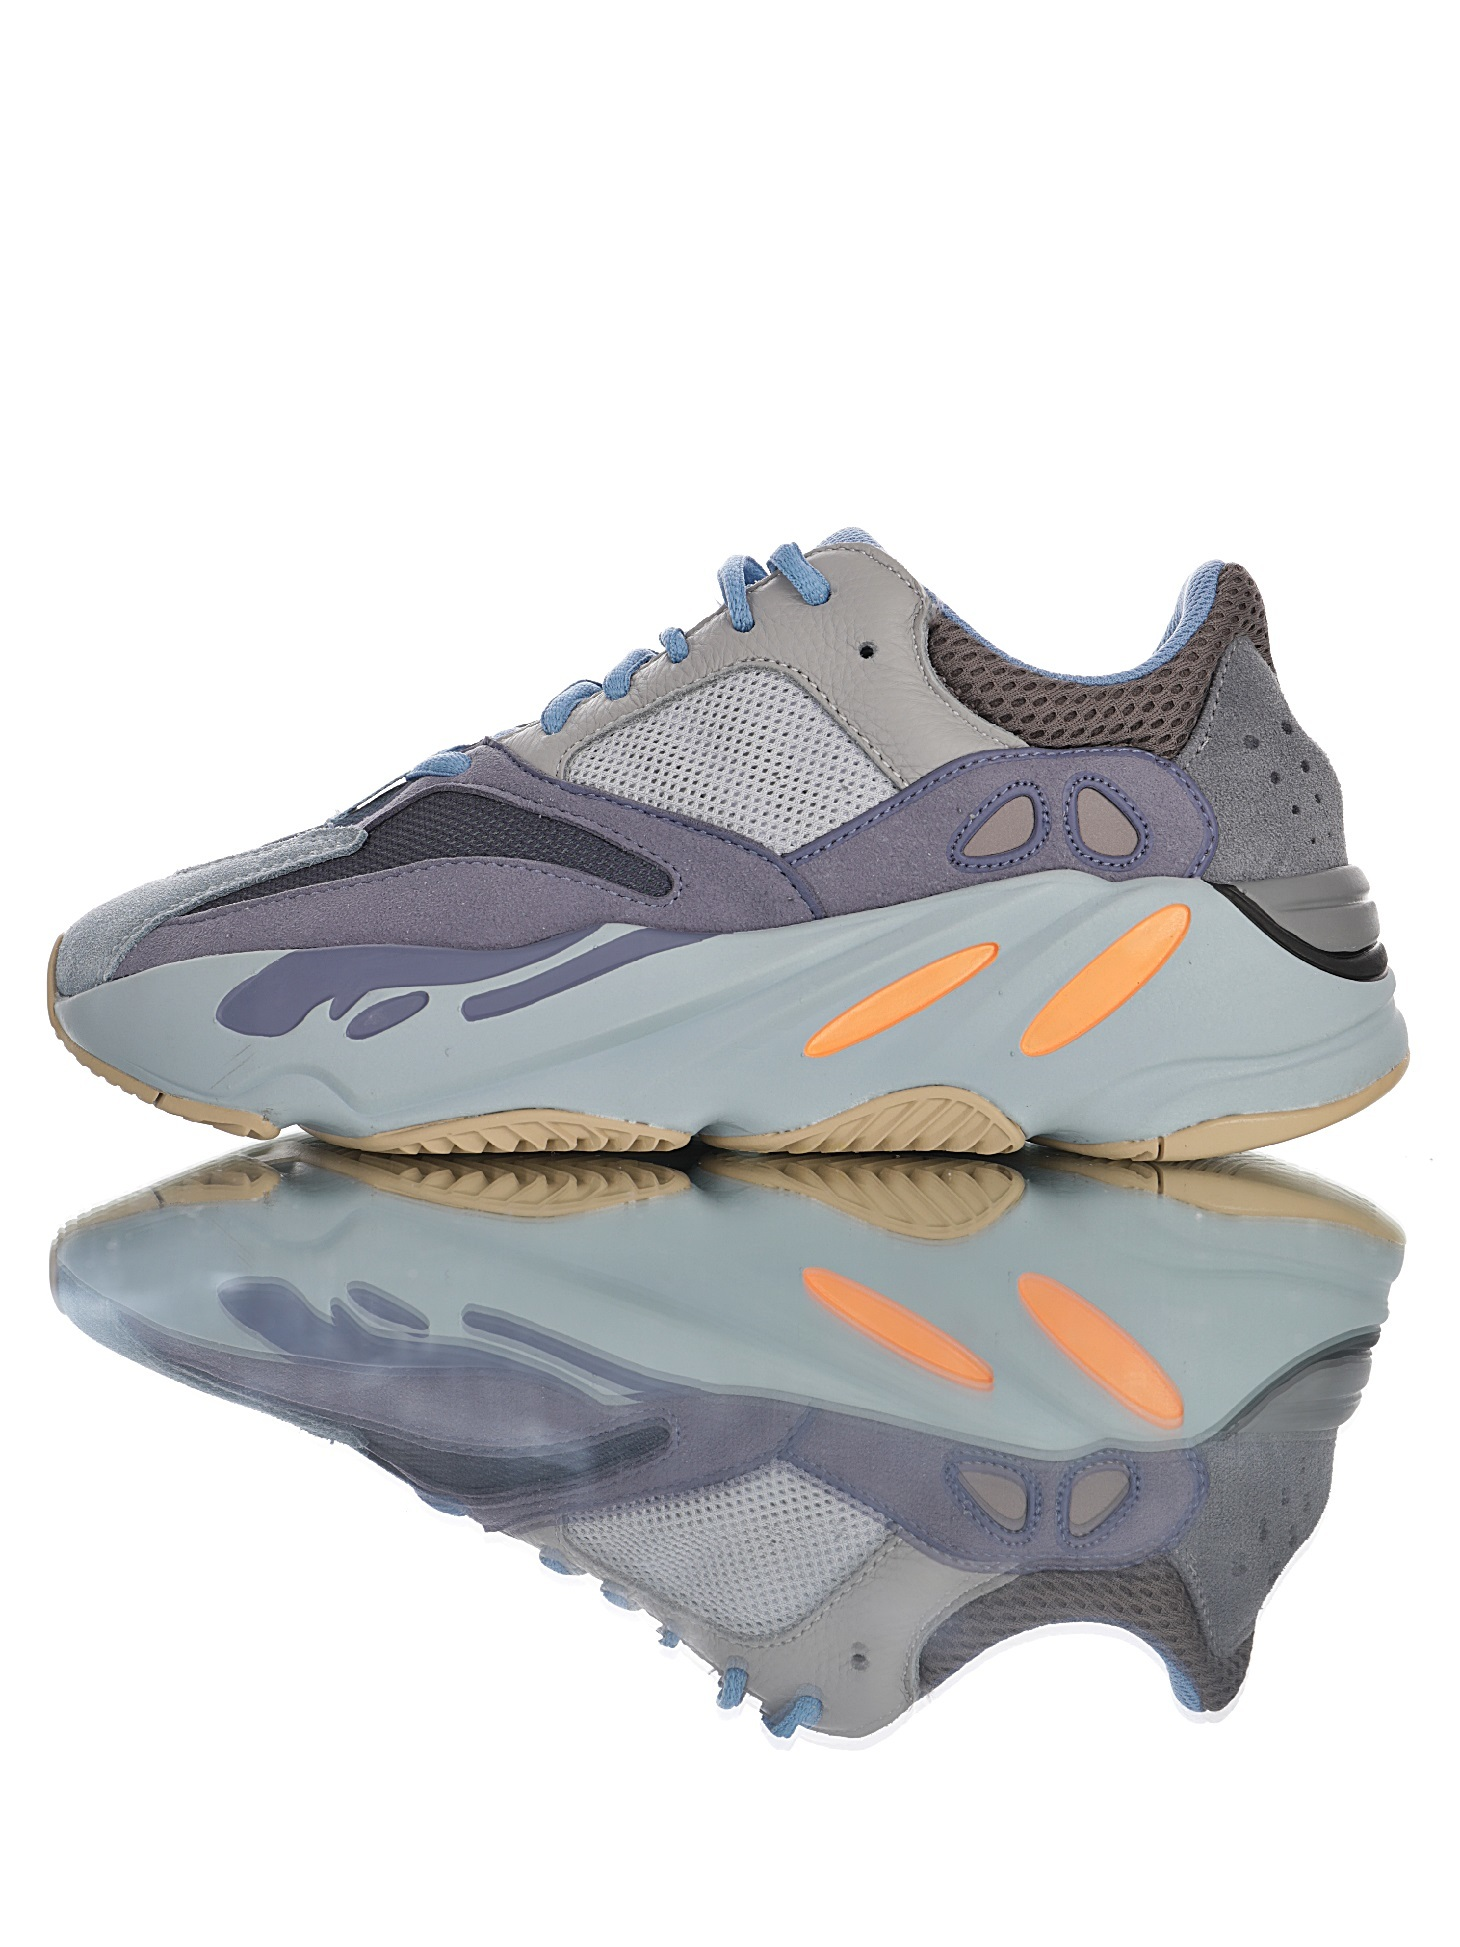 "Adidas Originals Yeezy Boost 700 V1""Carbon Blue""复古爆米花中底姥爷慢跑鞋"" 碳蓝多色拼接""F"